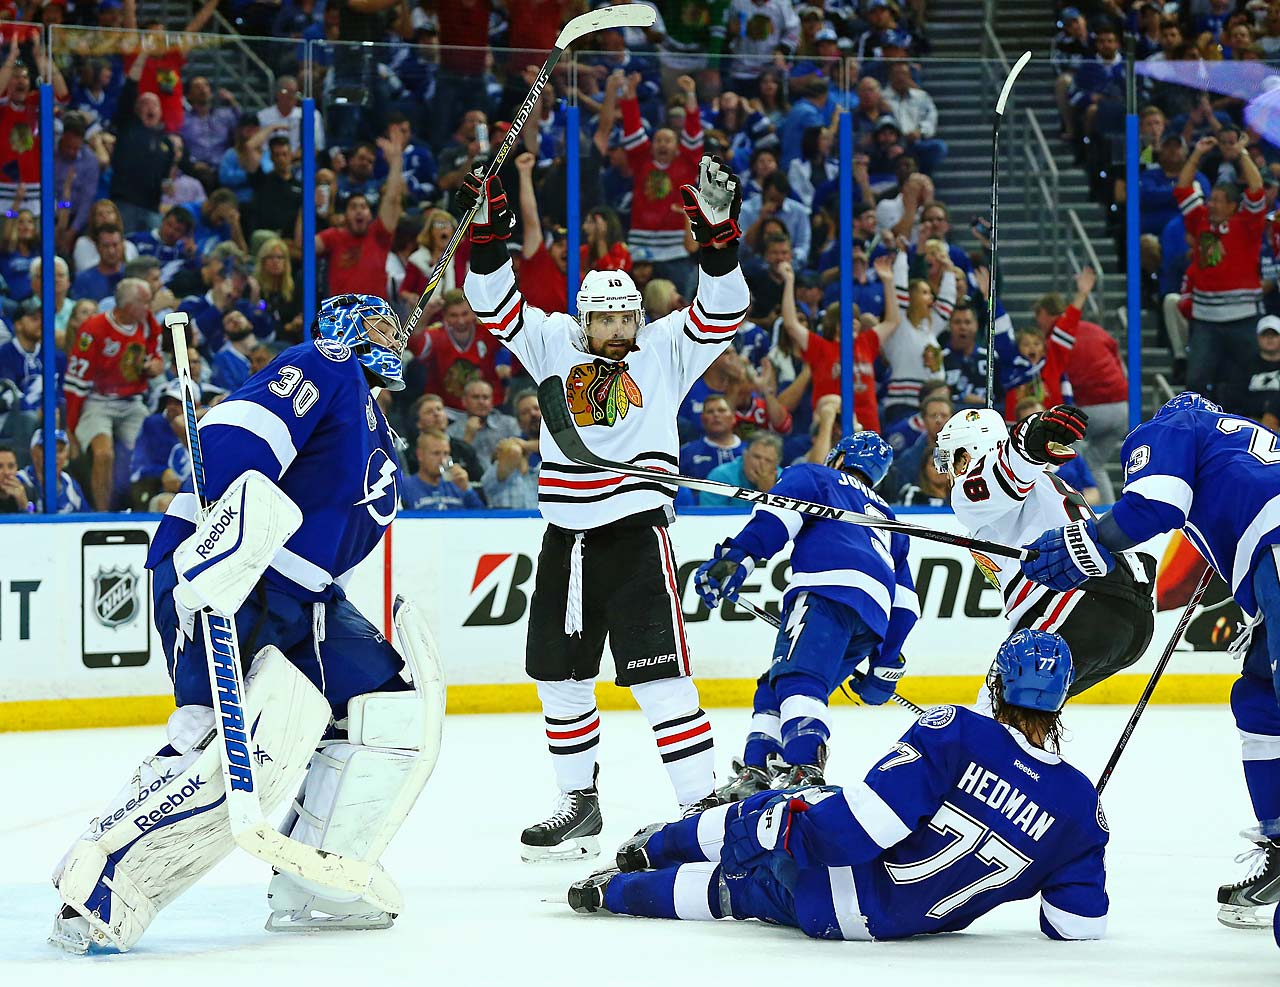 SI's best photos from Game 1 of the Stanley Cup Finals, beginning with Patrick Sharp of the Chicago Blackhawks celebrating a goal. The visitors scored twice in the final seven minutes to take a 2-1 victory over Tampa Bay.